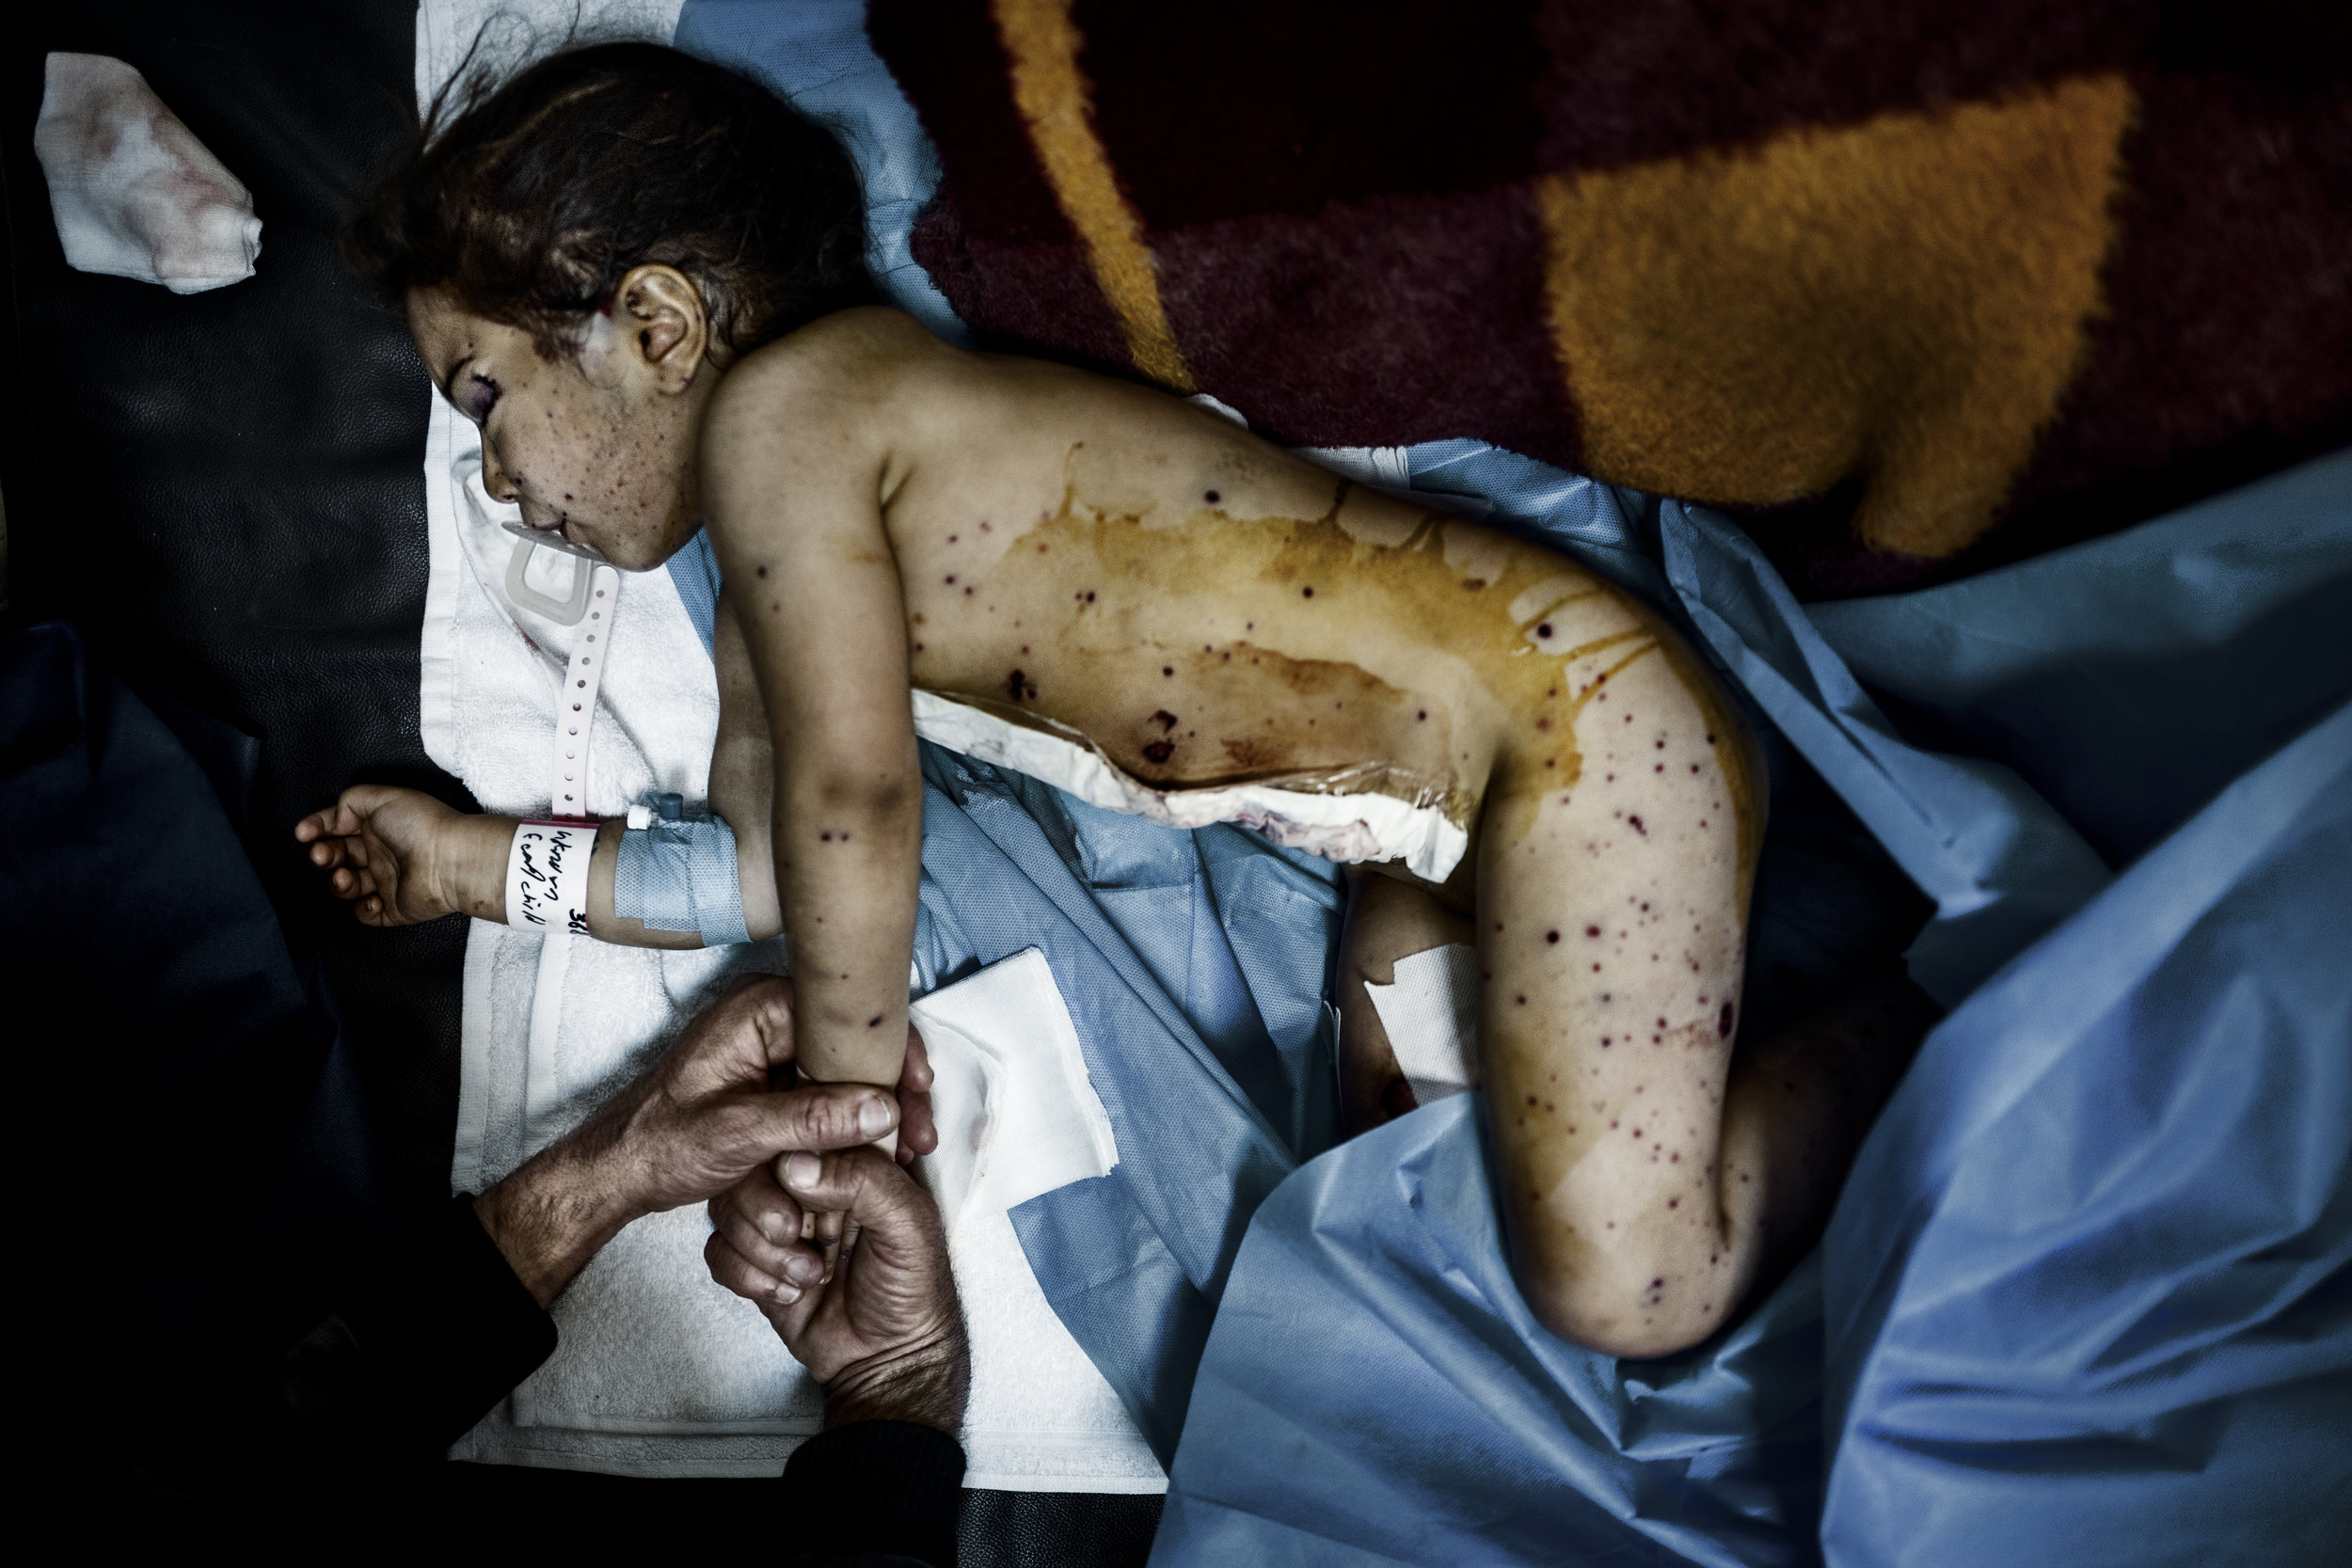 Three year old Narin's body is riddled with shrapnel. She's in a hospital bed at a hospital in the outskirts of the Kurdish captial Erbil, a couple of hours drive from Mosul. The day before she was struck by an ISIS mortar. The doctors believe Narin will survive, although they can't remove a piece of grenade, that's still lodged in her brain.